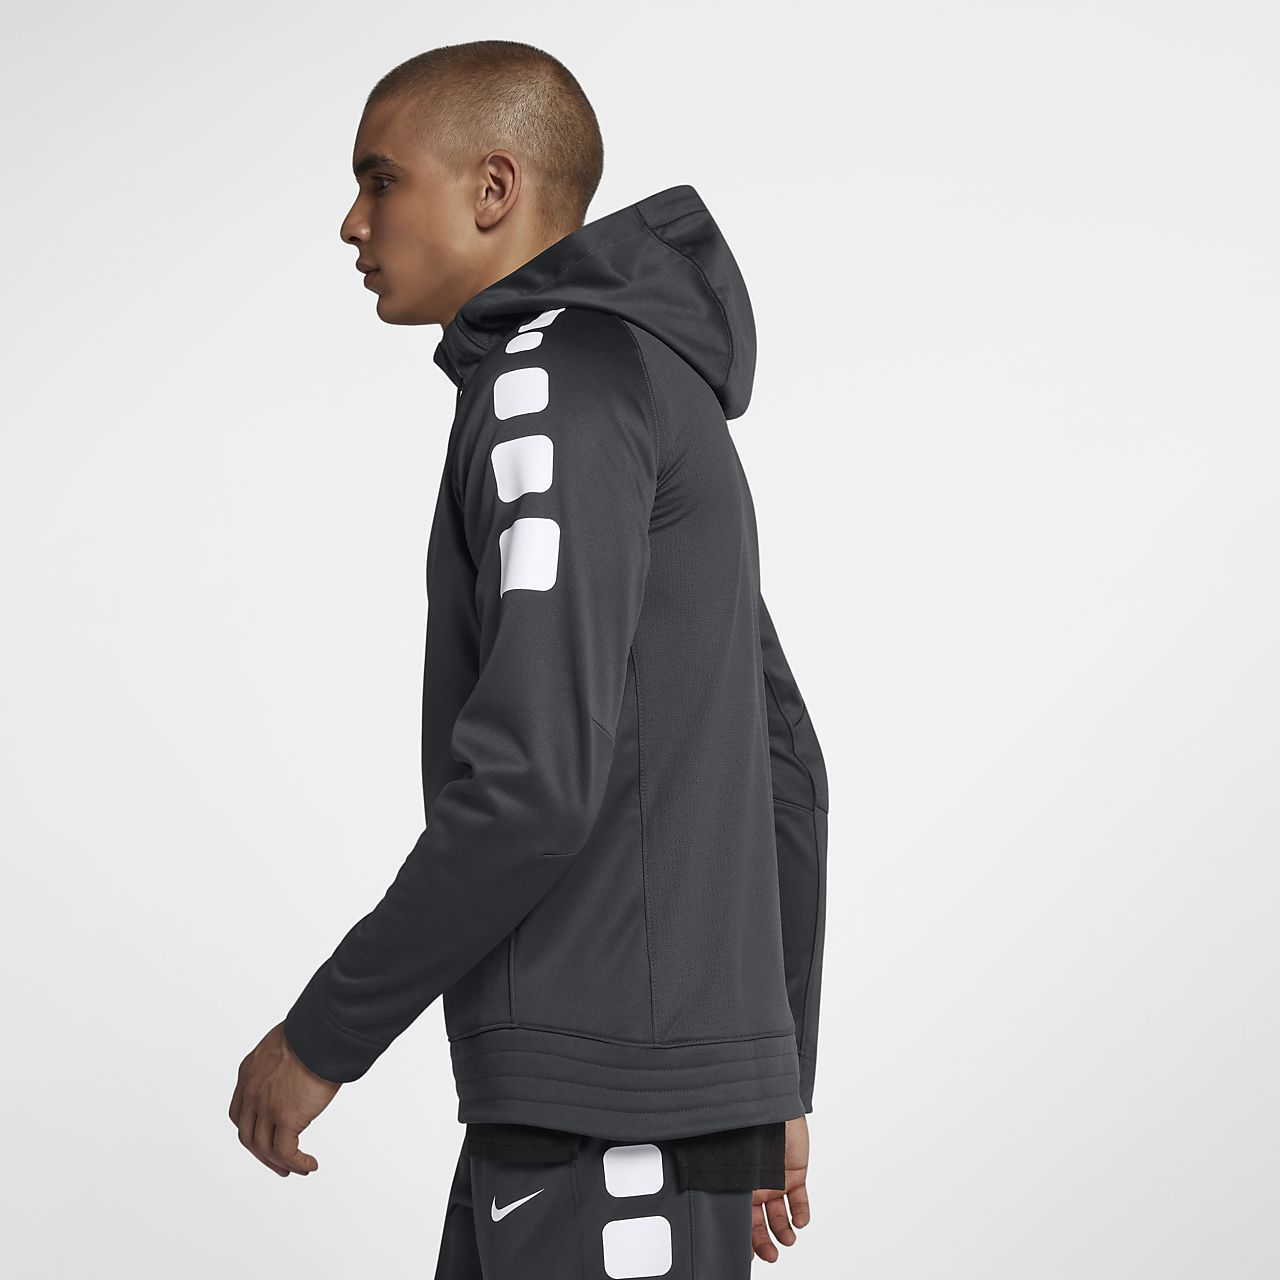 sneakers for cheap 46601 a8ccd ... Nike Therma Elite Men s Basketball Hoodie